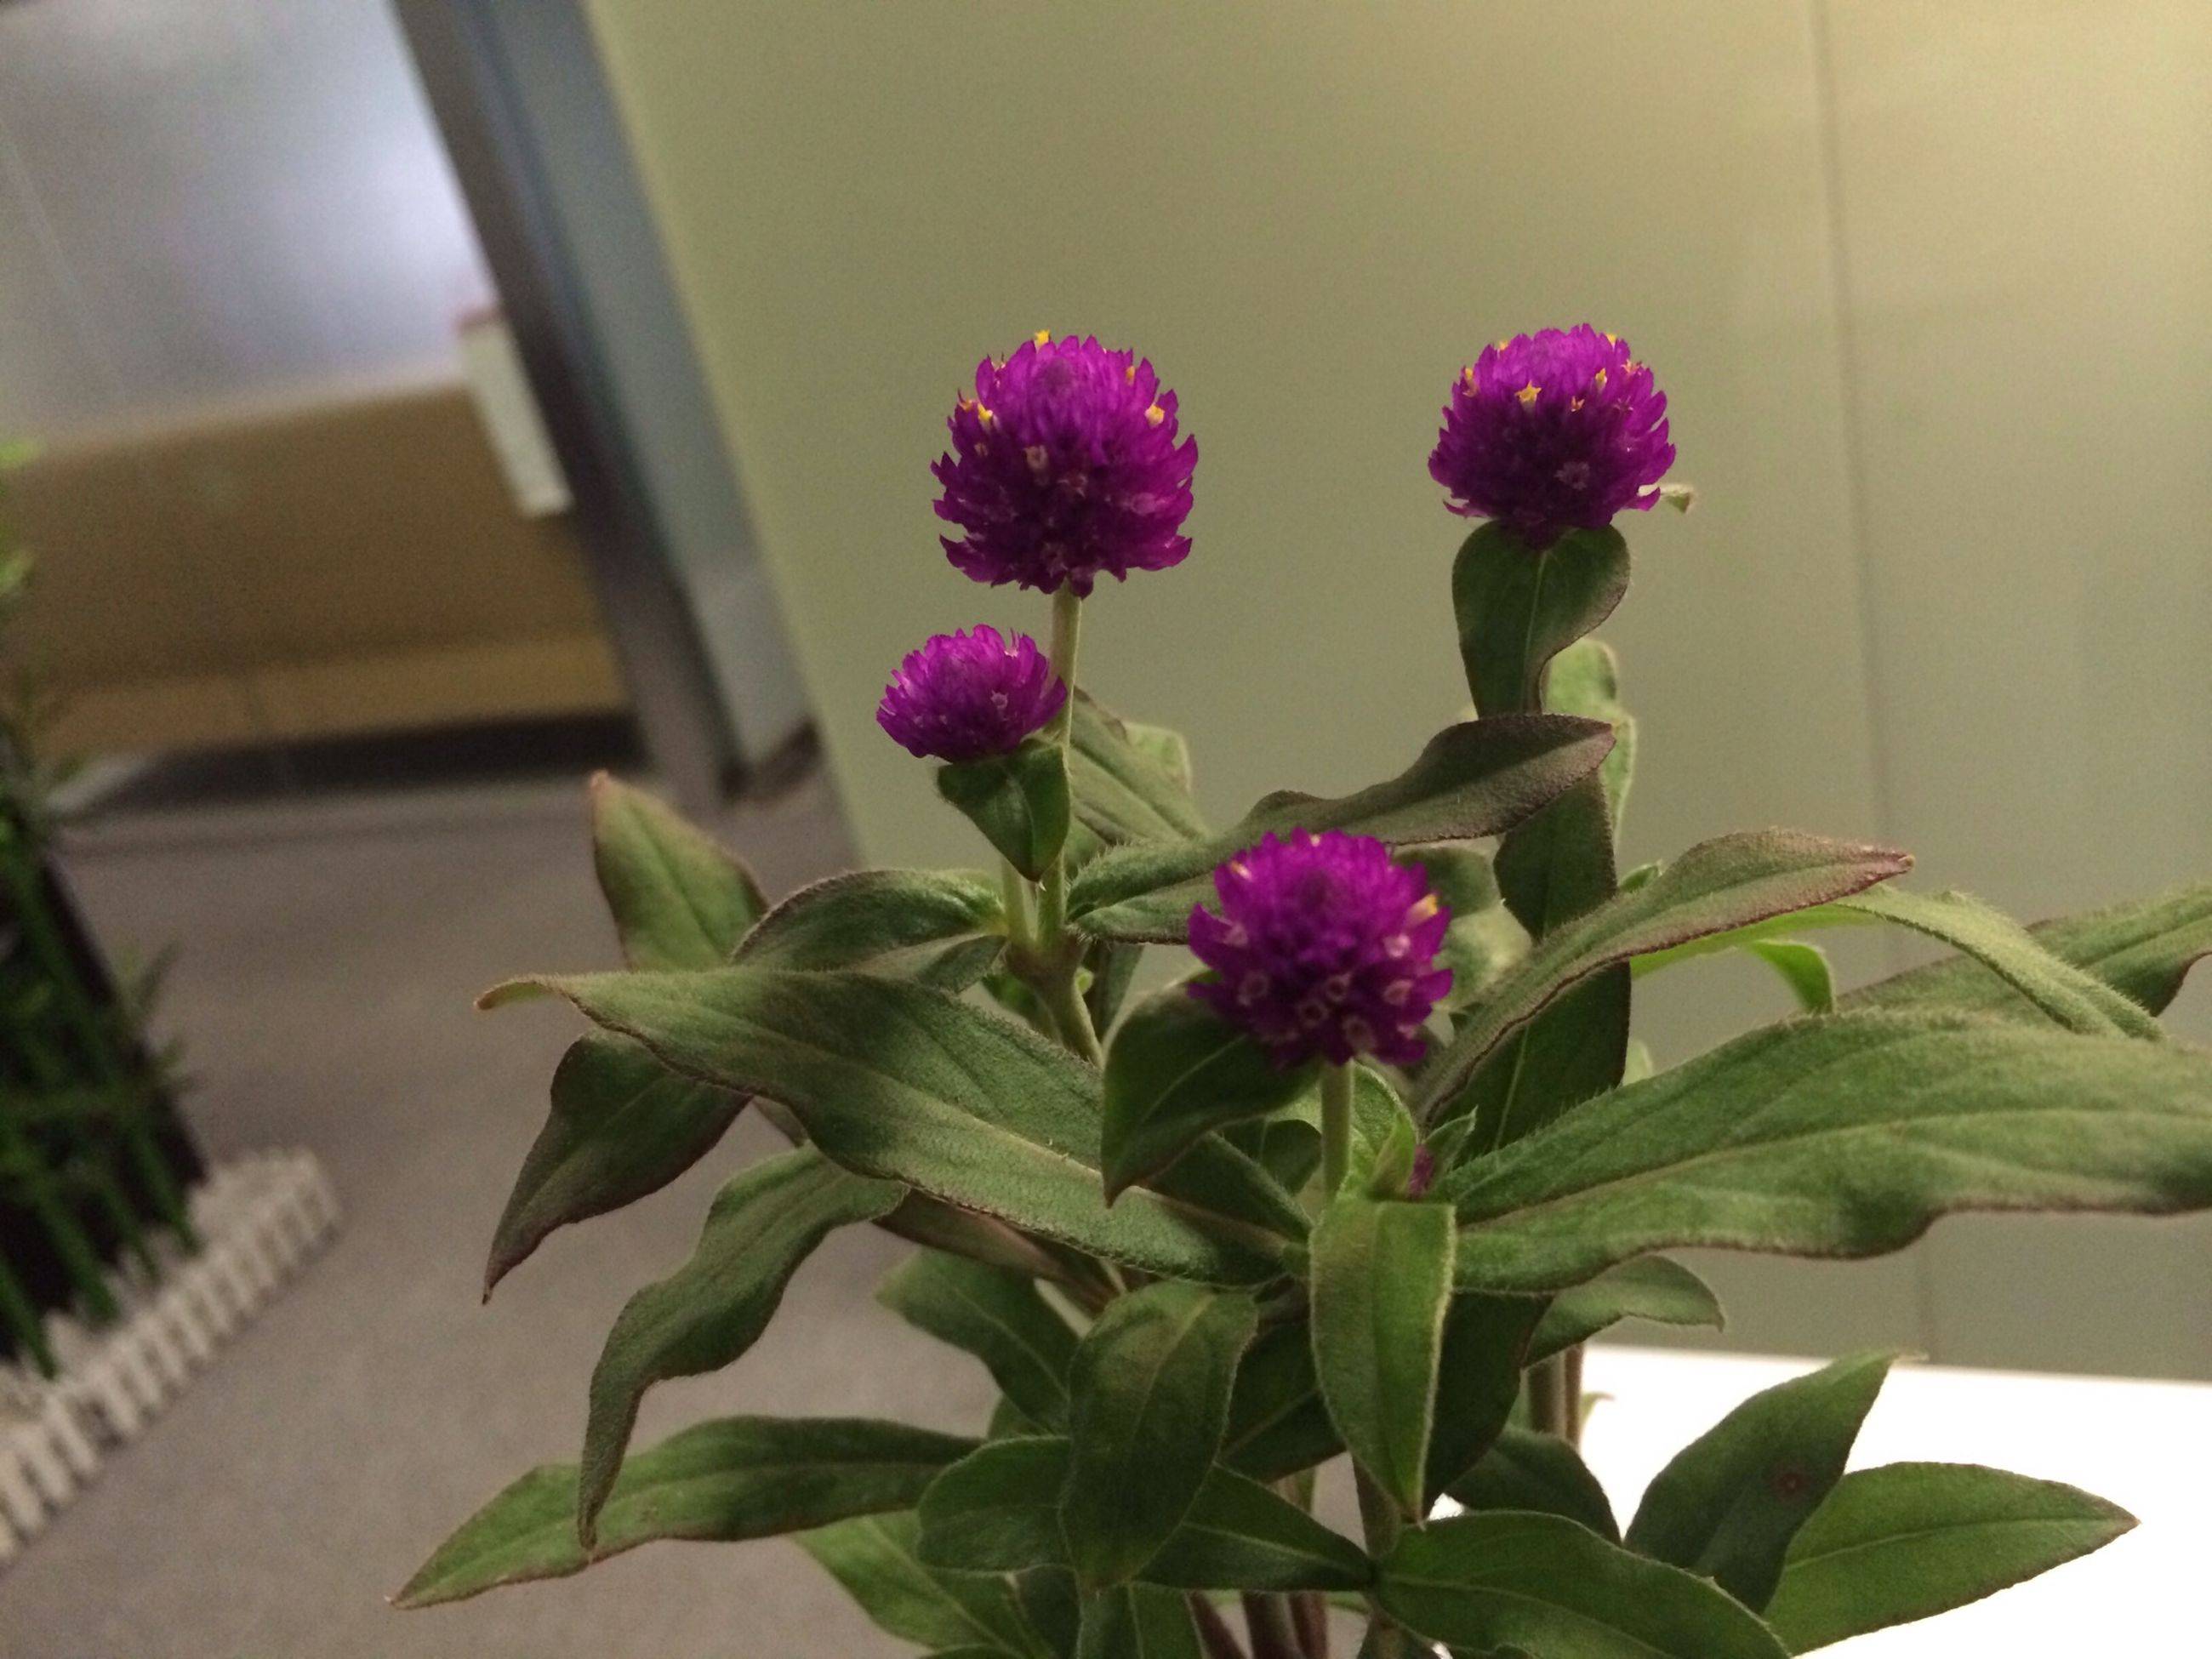 flower, leaf, freshness, growth, fragility, petal, plant, pink color, beauty in nature, nature, flower head, close-up, green color, stem, purple, potted plant, indoors, blooming, focus on foreground, in bloom